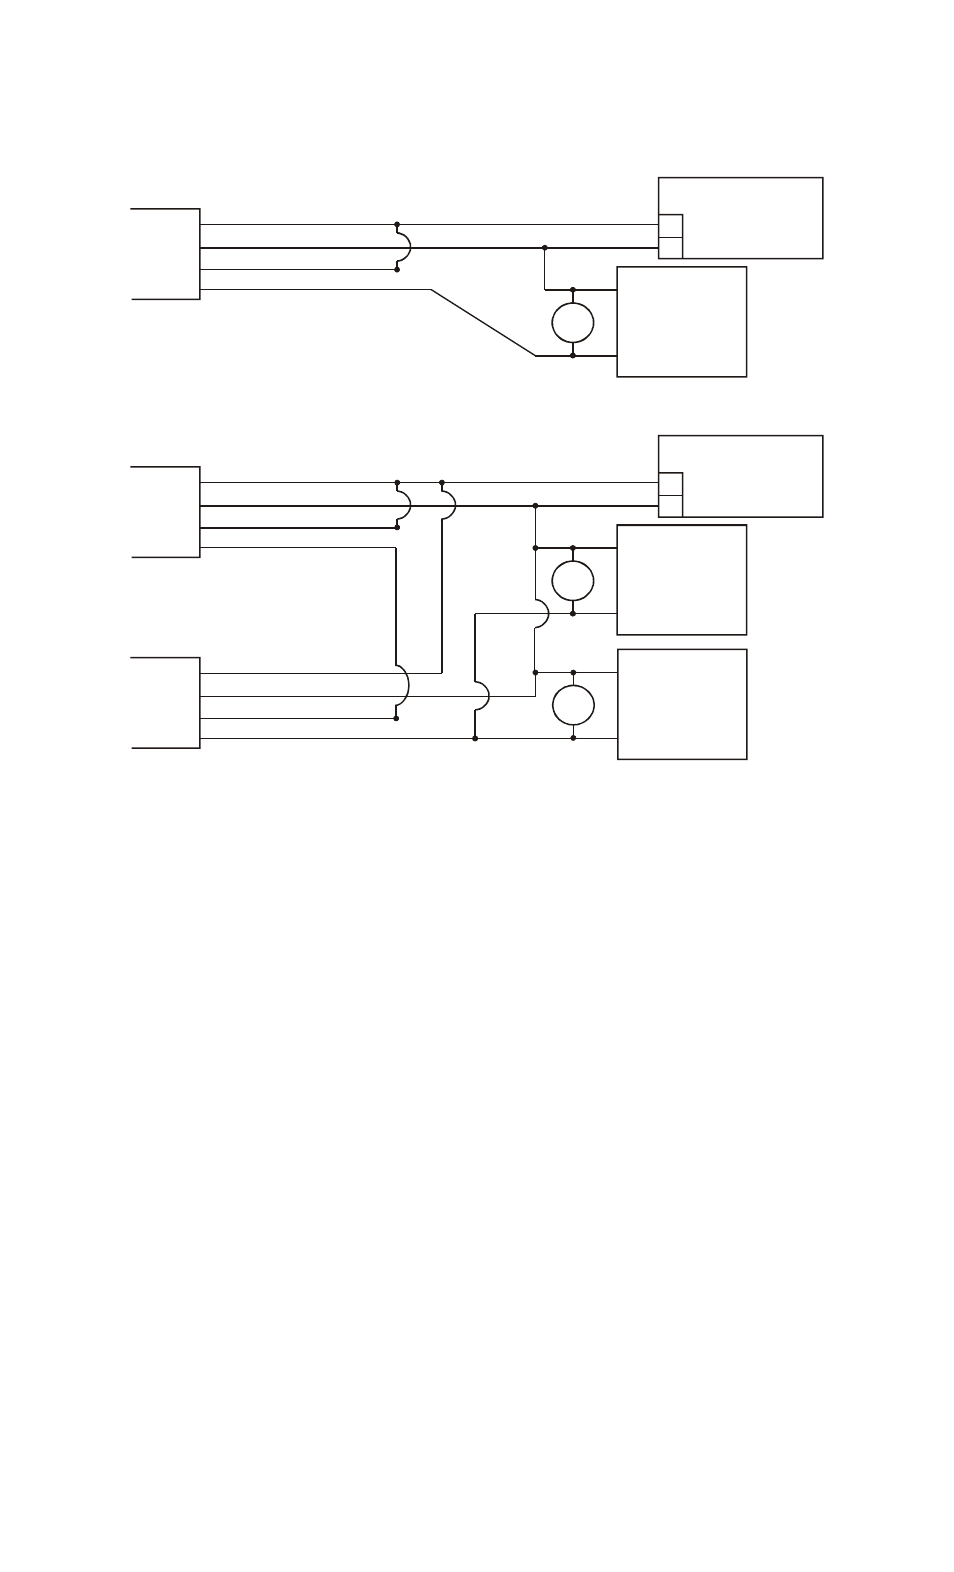 [ZTBE_9966]  Securitron TSB-3 User Manual | Page 5 / 11 | Securitron Wiring Diagrams |  | Manuals Directory